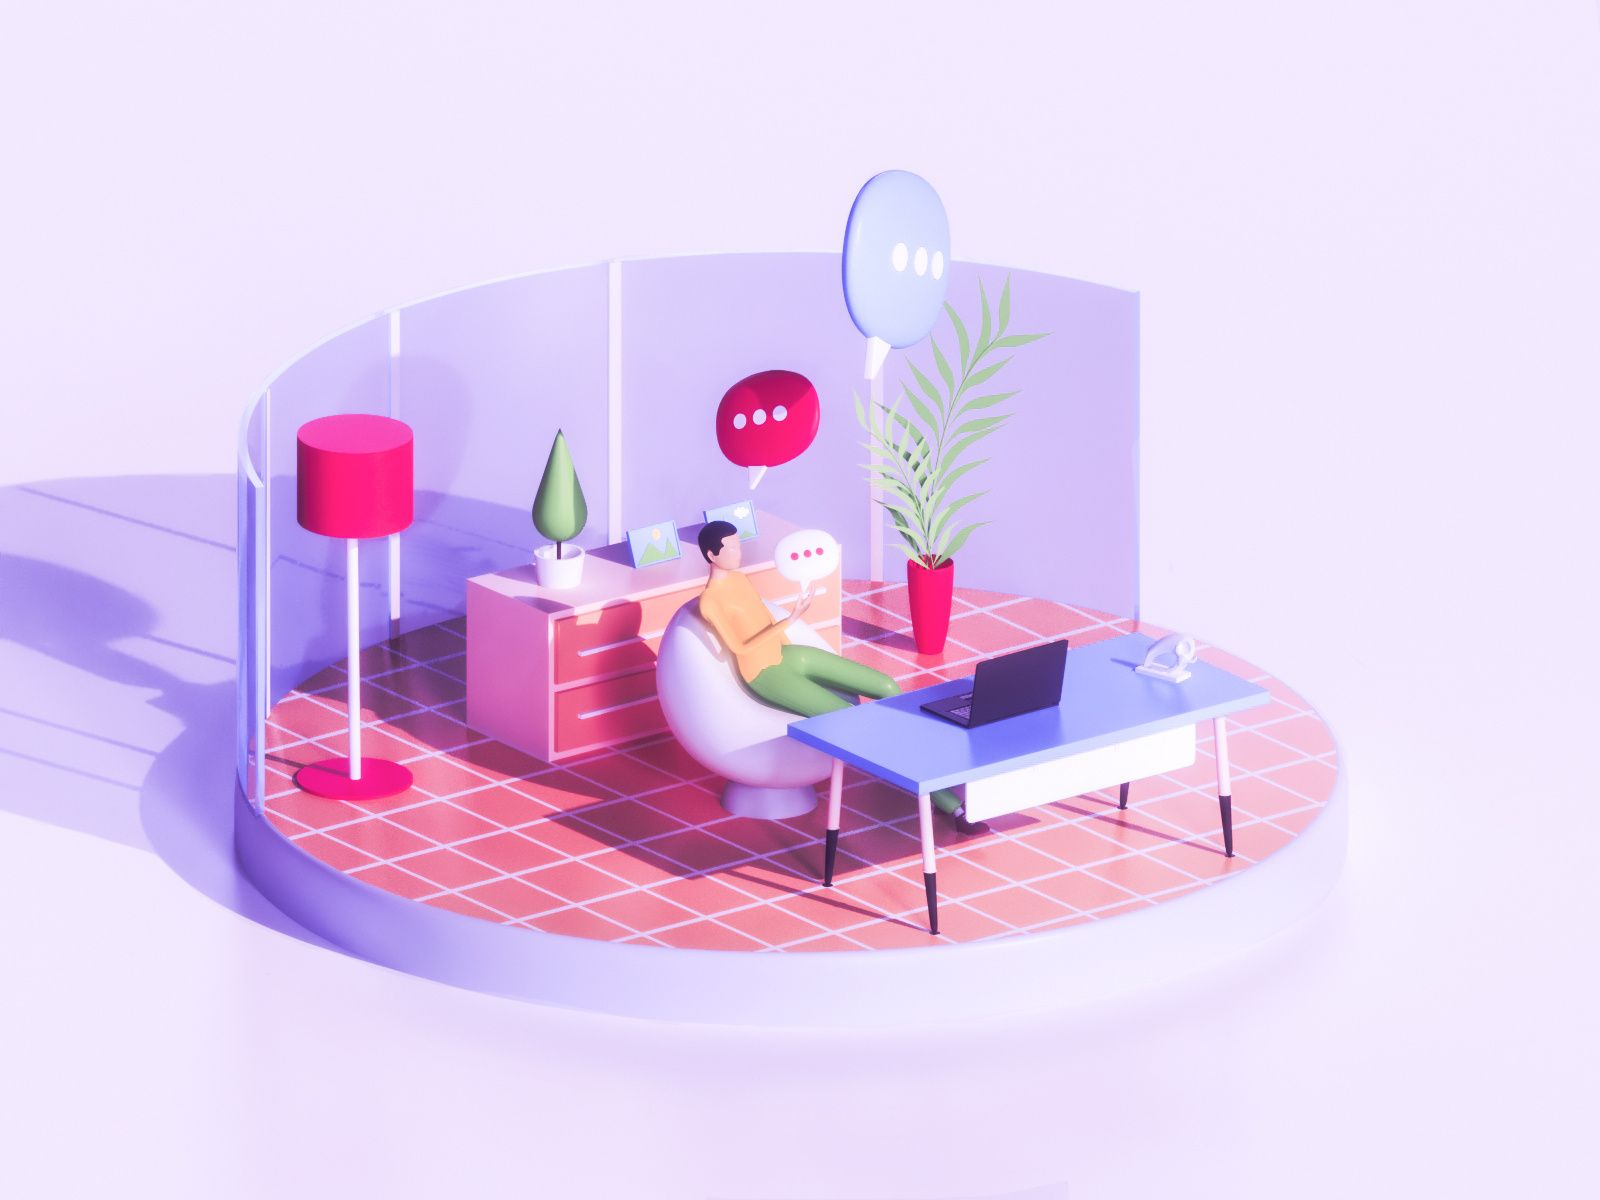 Chat everywhere - Work | Concept architecture, Show, tell